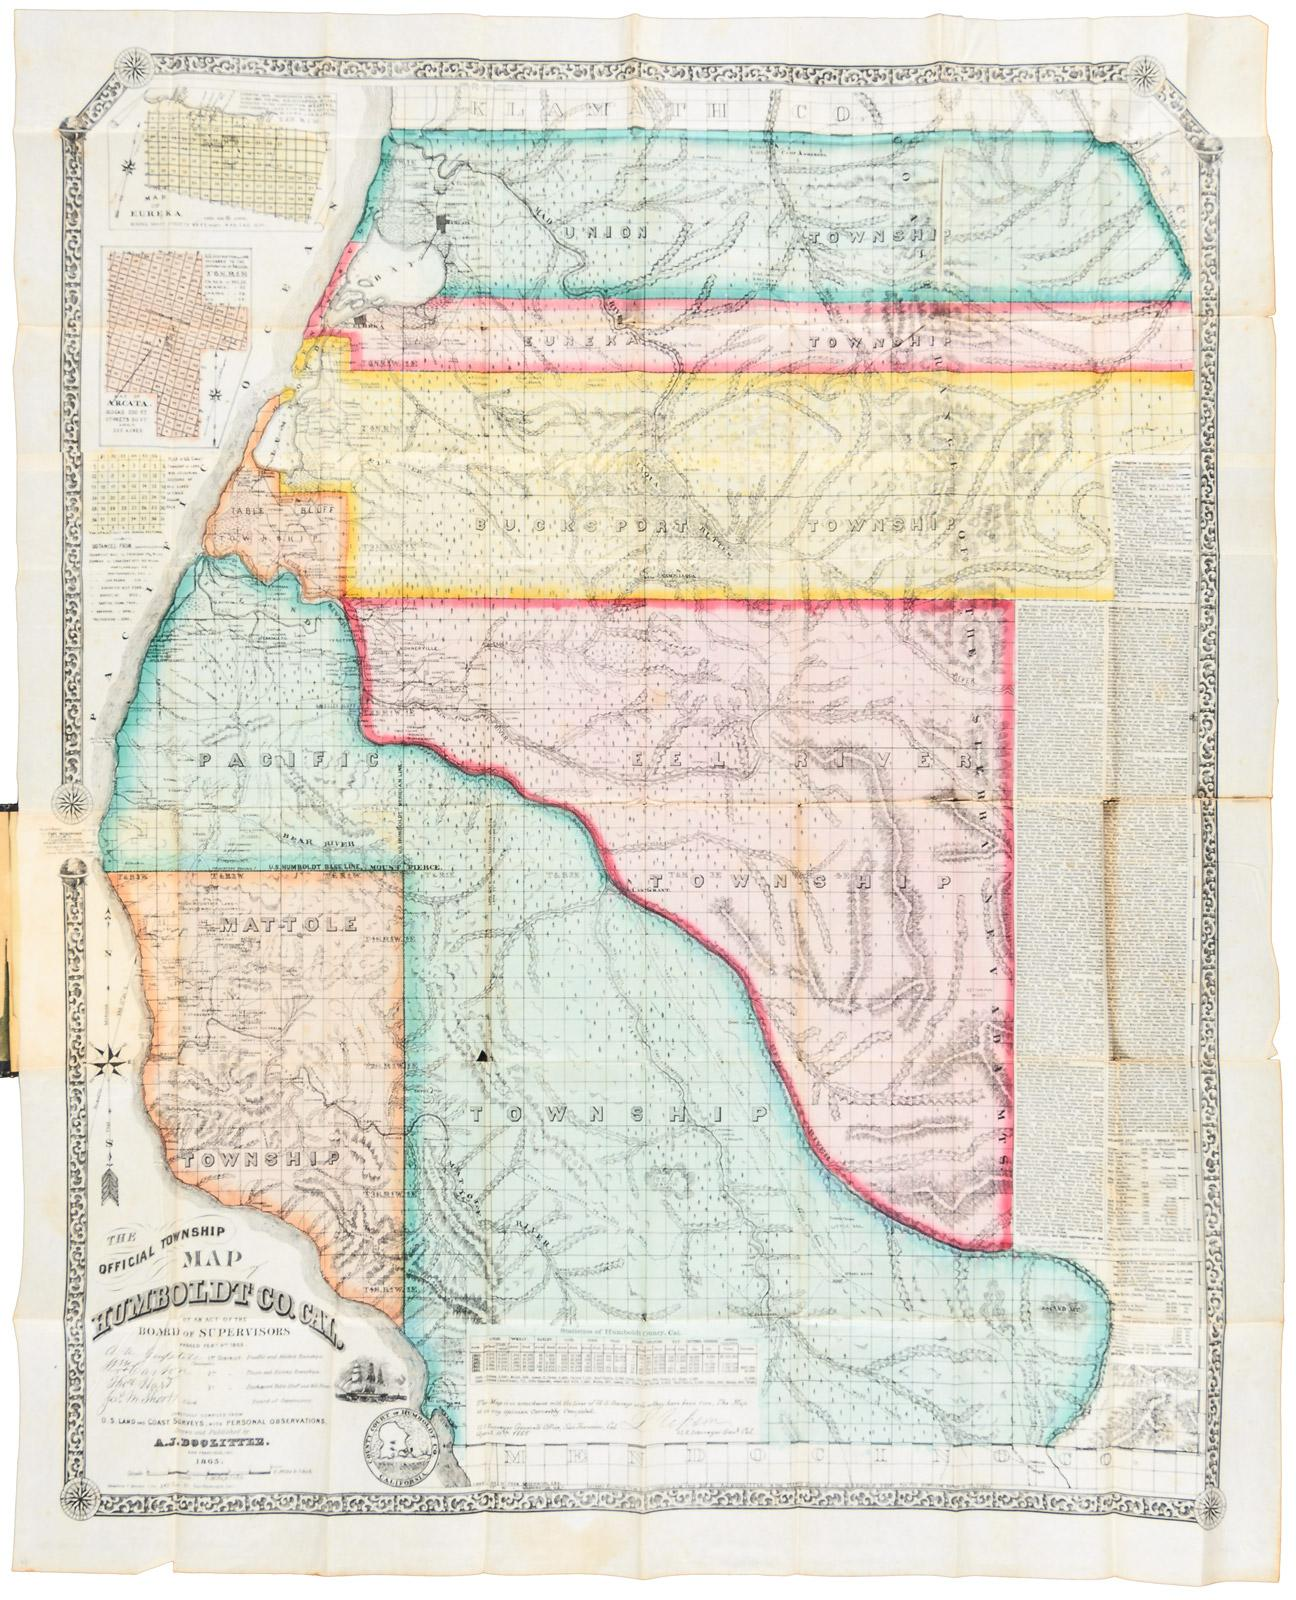 The Official Township Map Of Humboldt County California By An Act